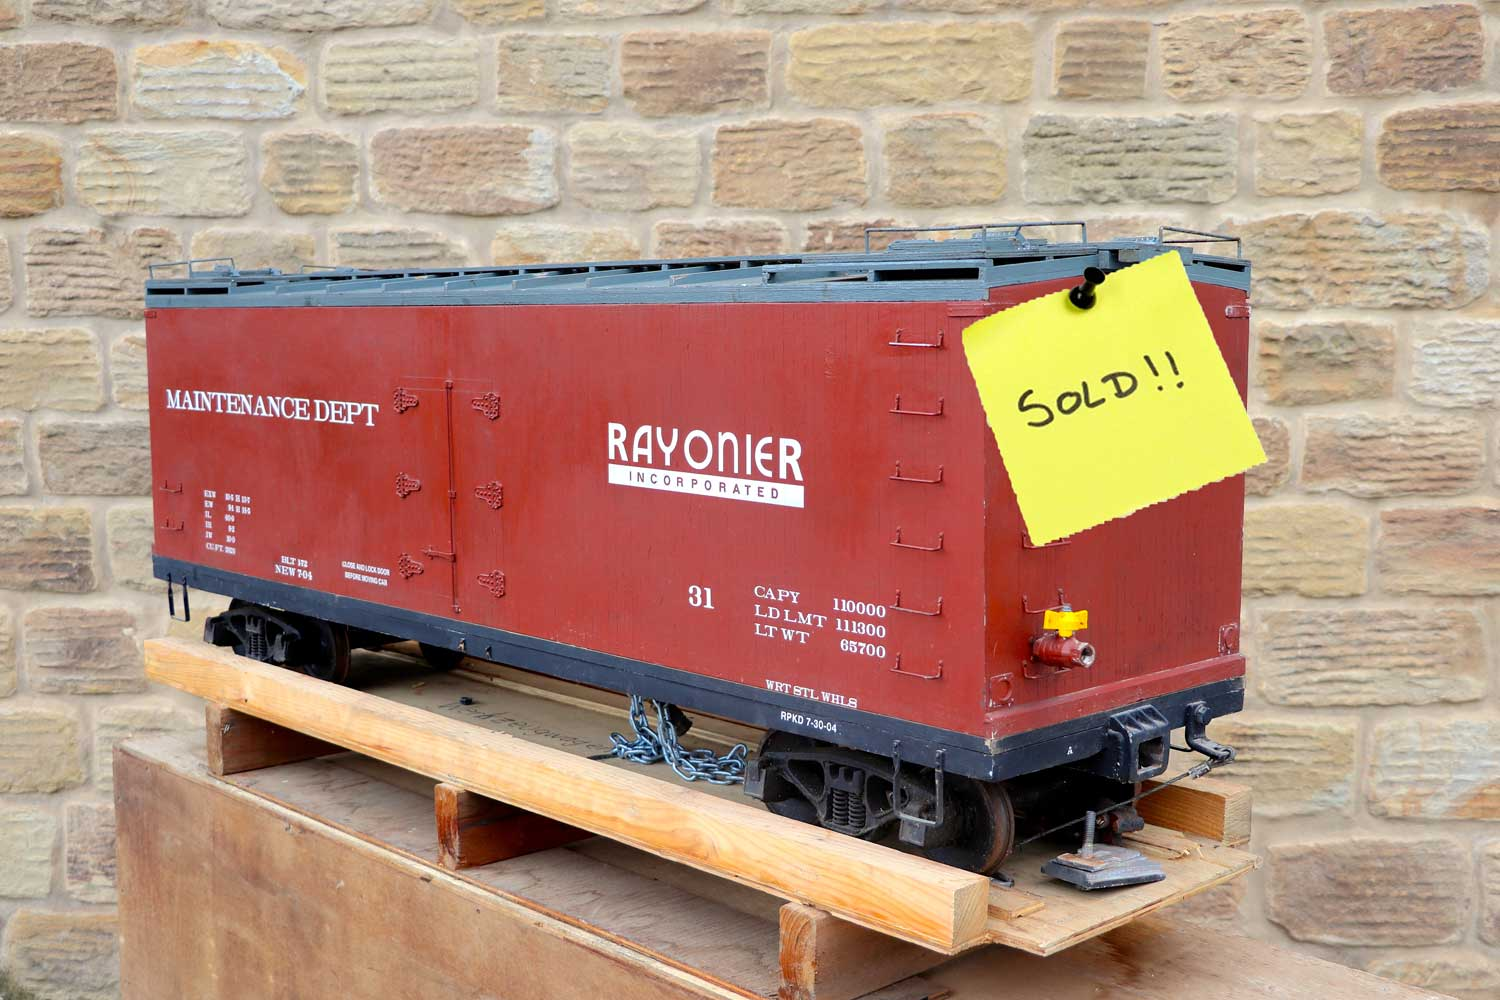 test SOLD-7-and-a-quarter-inch-brown-rayonier-hc-railroad-carriage-live-steam-for-sale-01